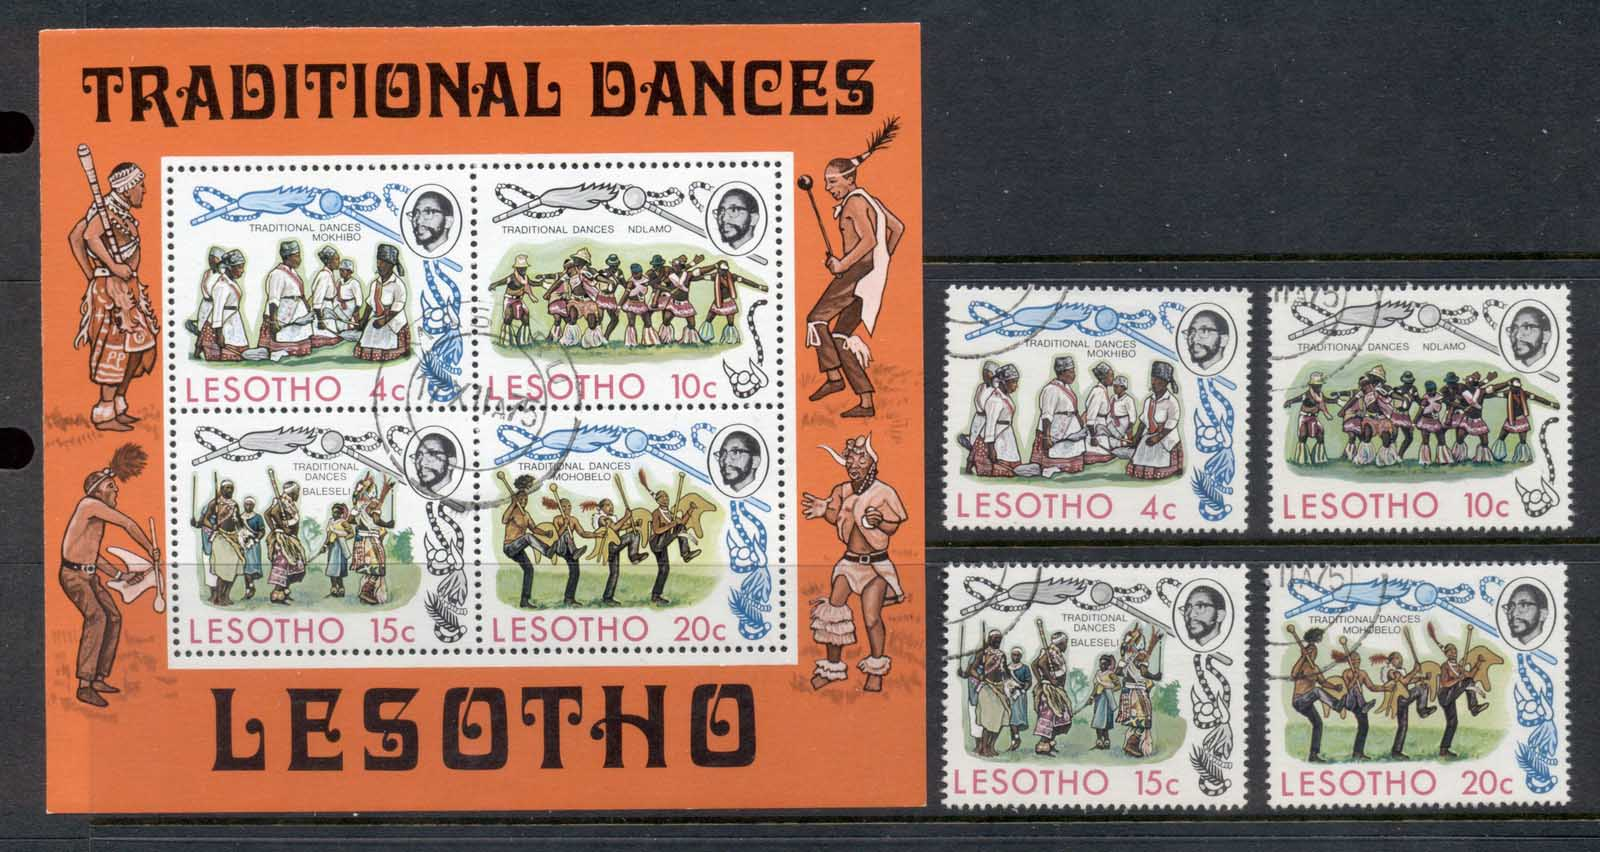 Lesotho 1975 Traditional Dances = MS FU